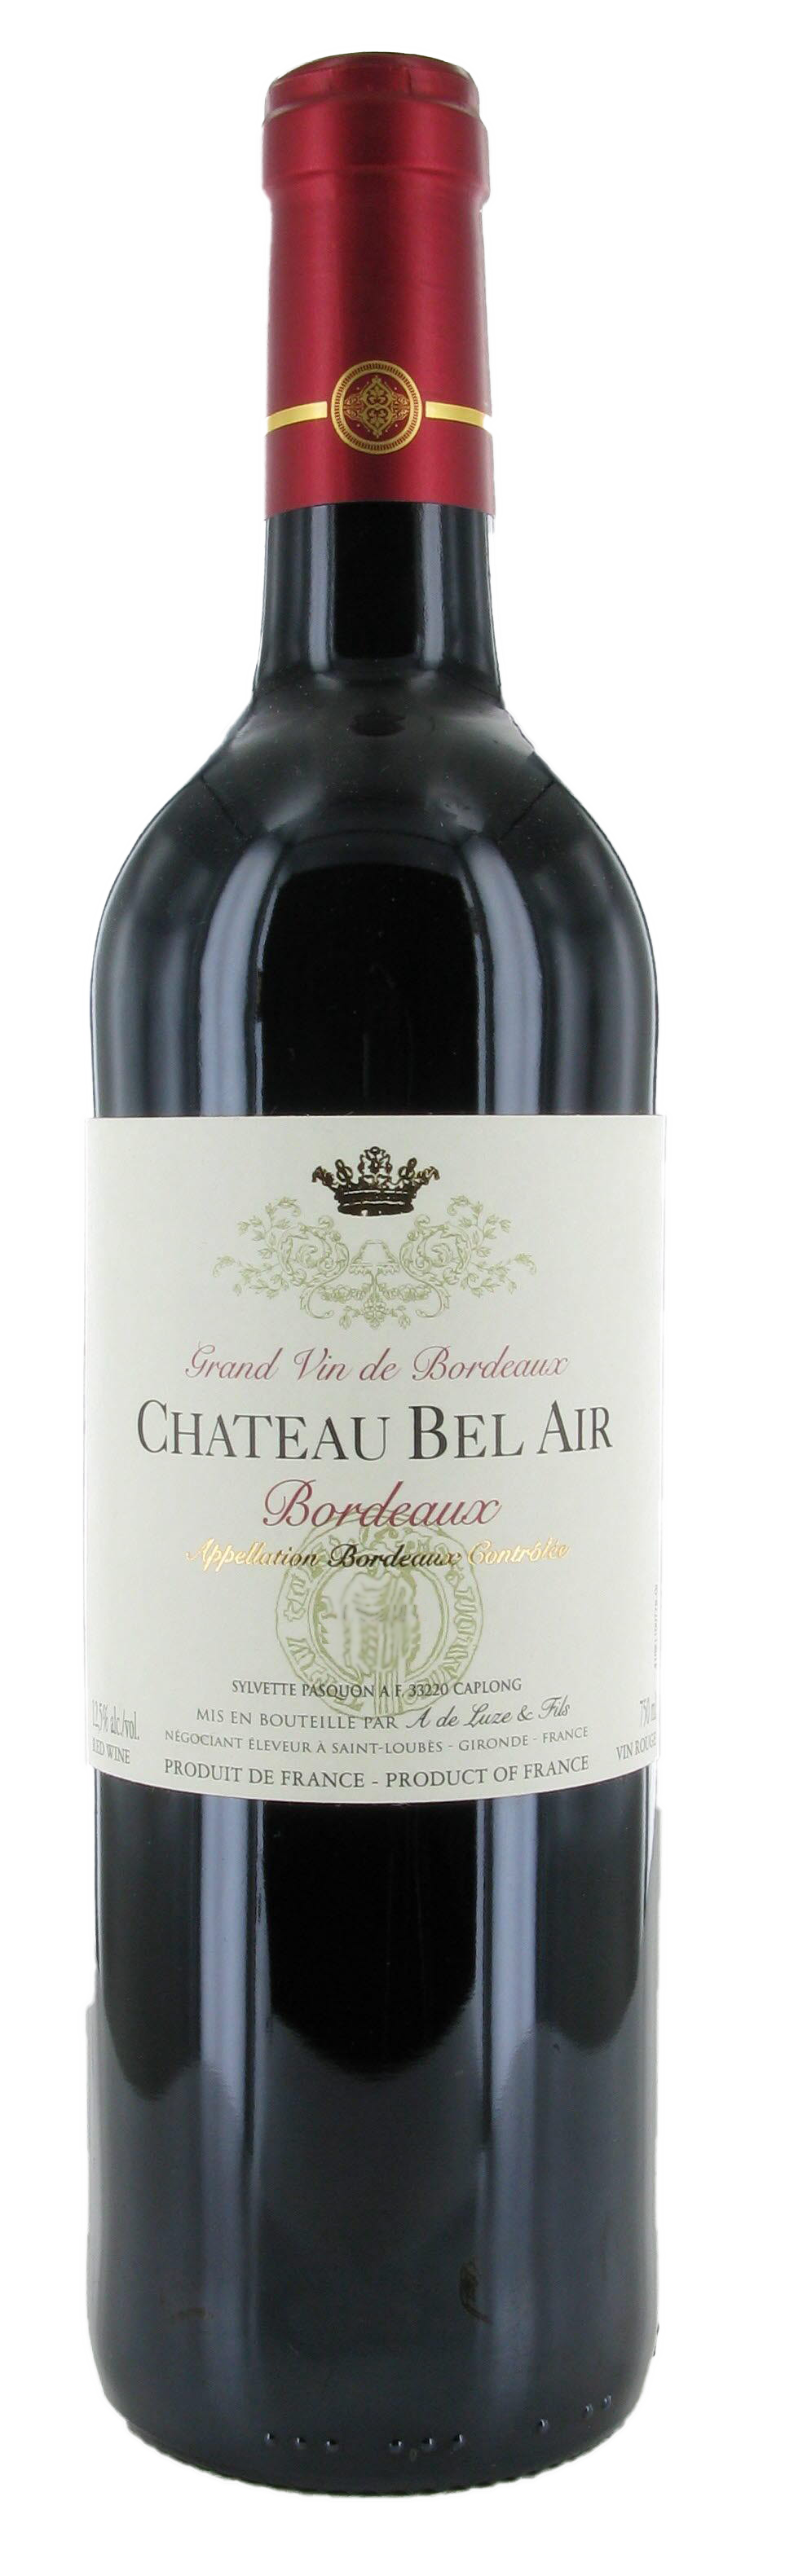 Chateau Bel Air no vintage